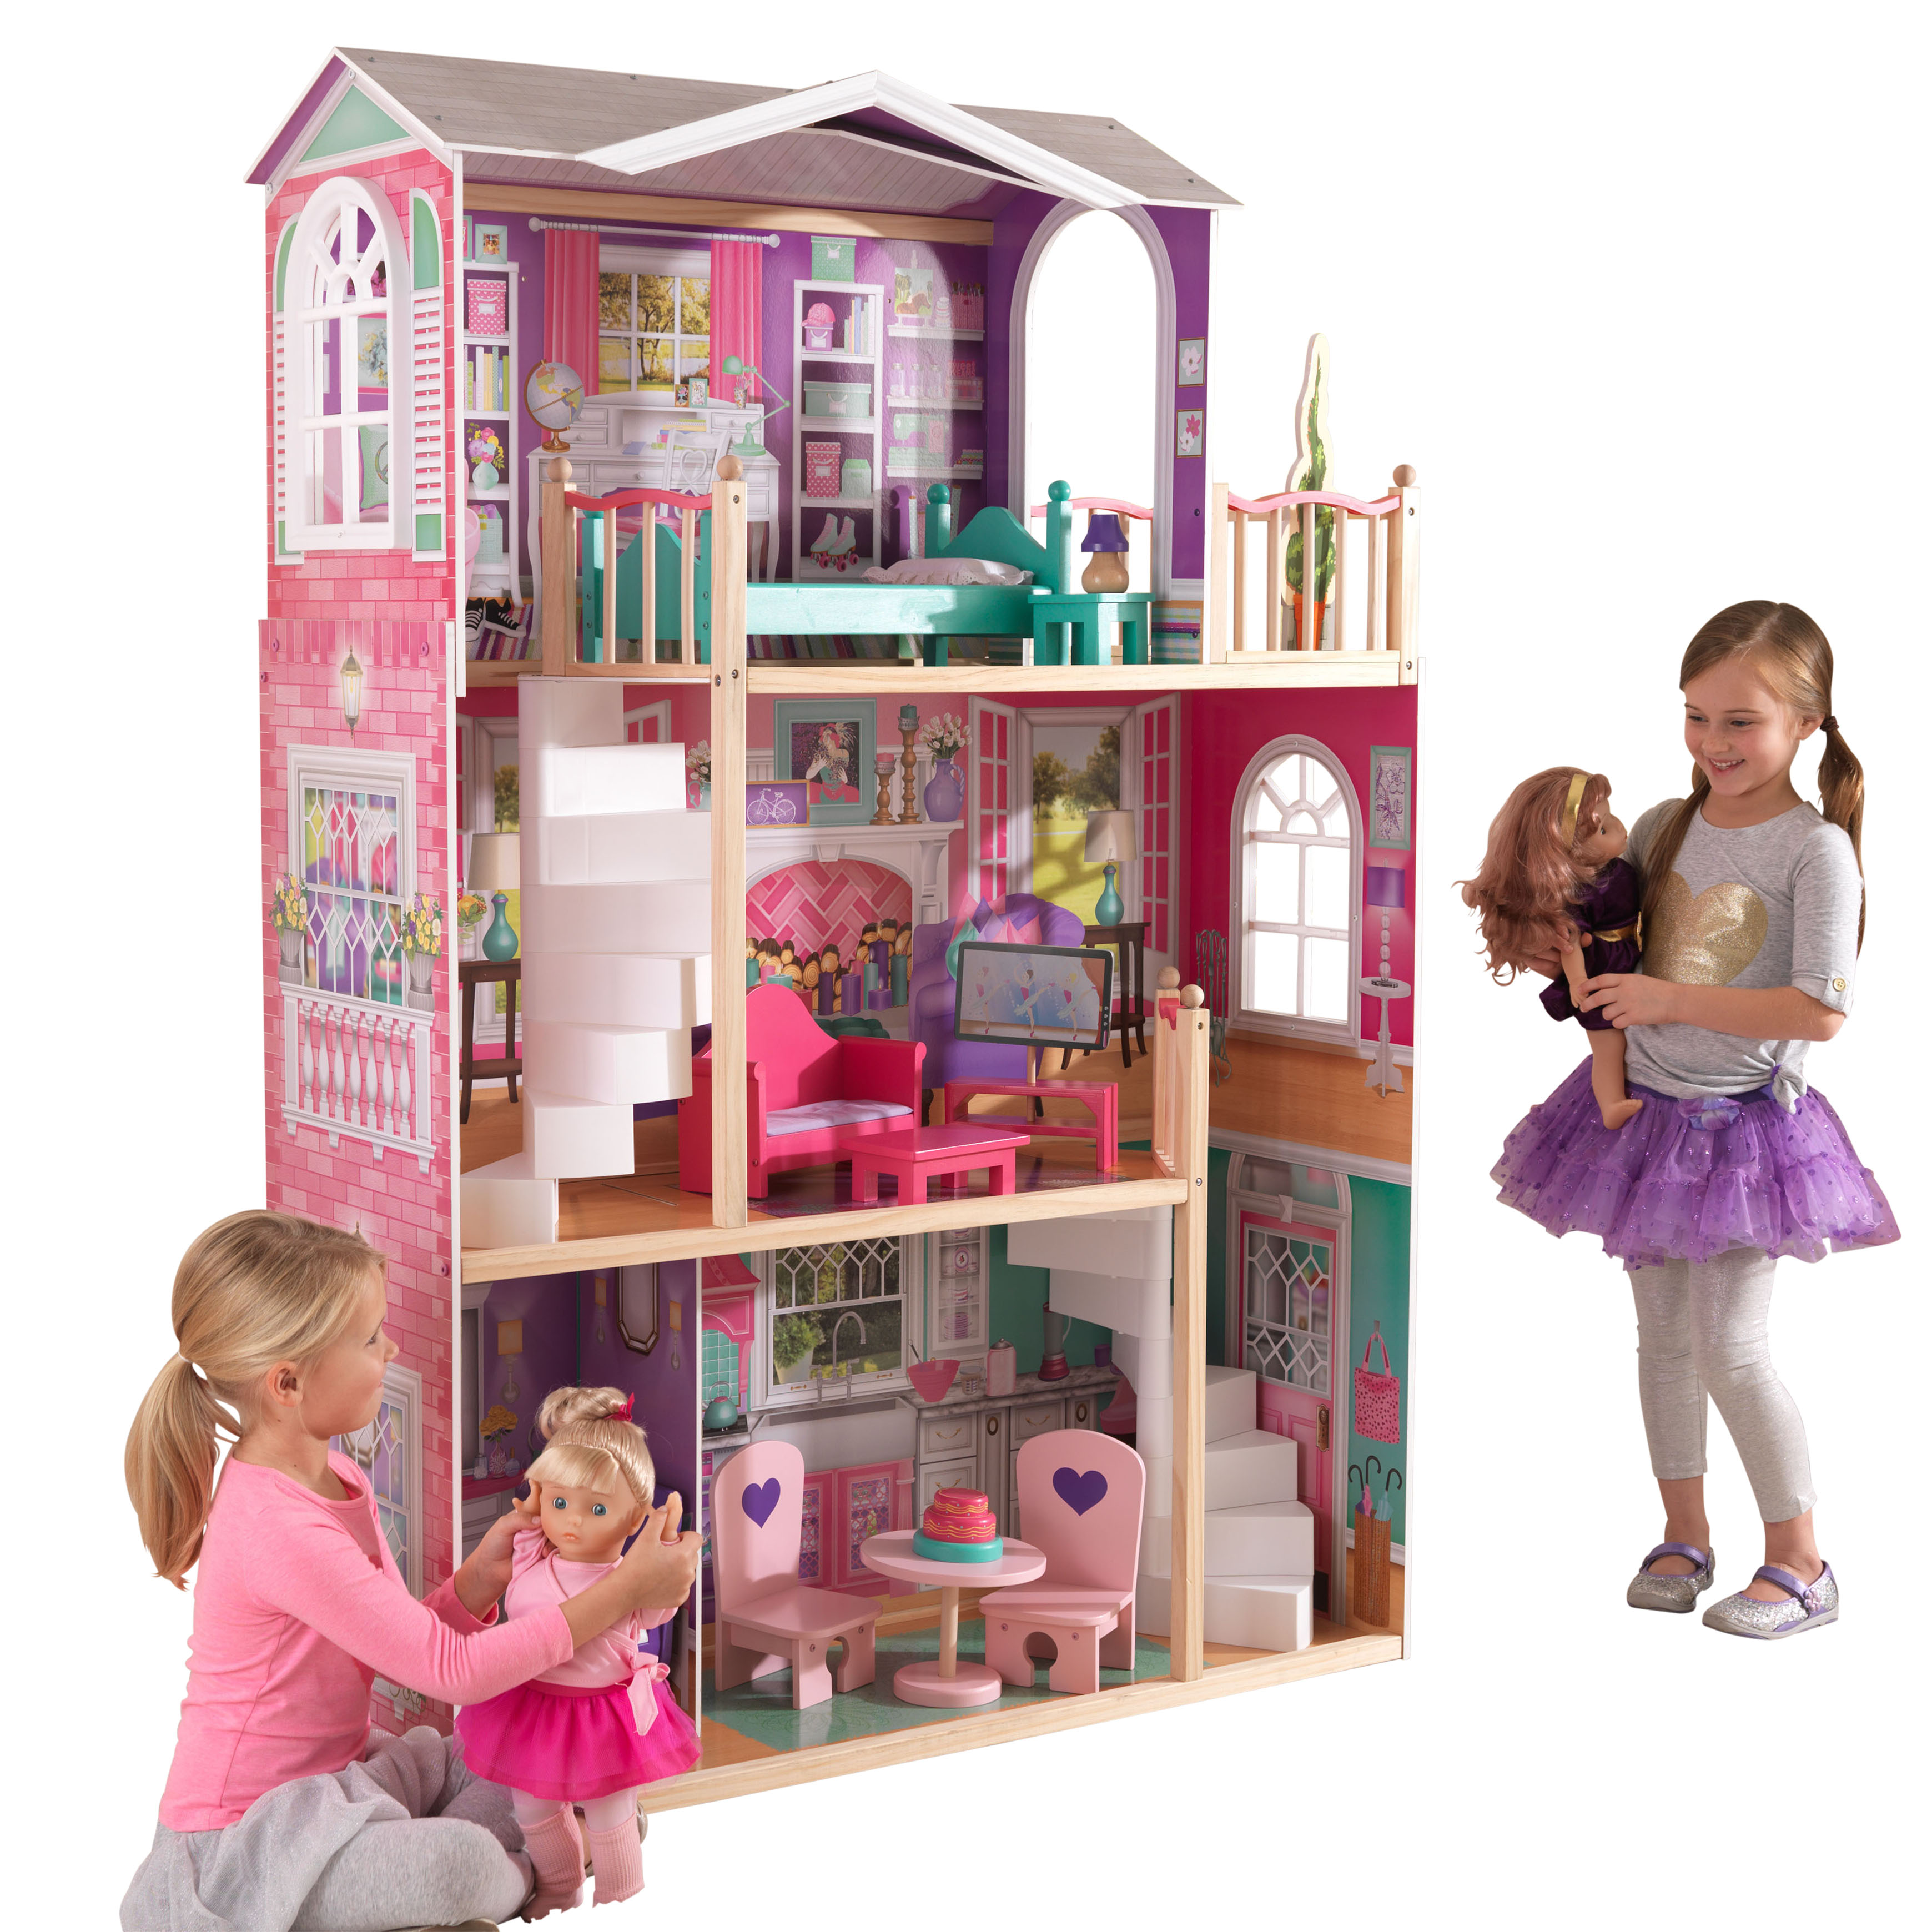 KidKraft 18-Inch Dollhouse Doll Manor with 12 accessories included by KidKraft